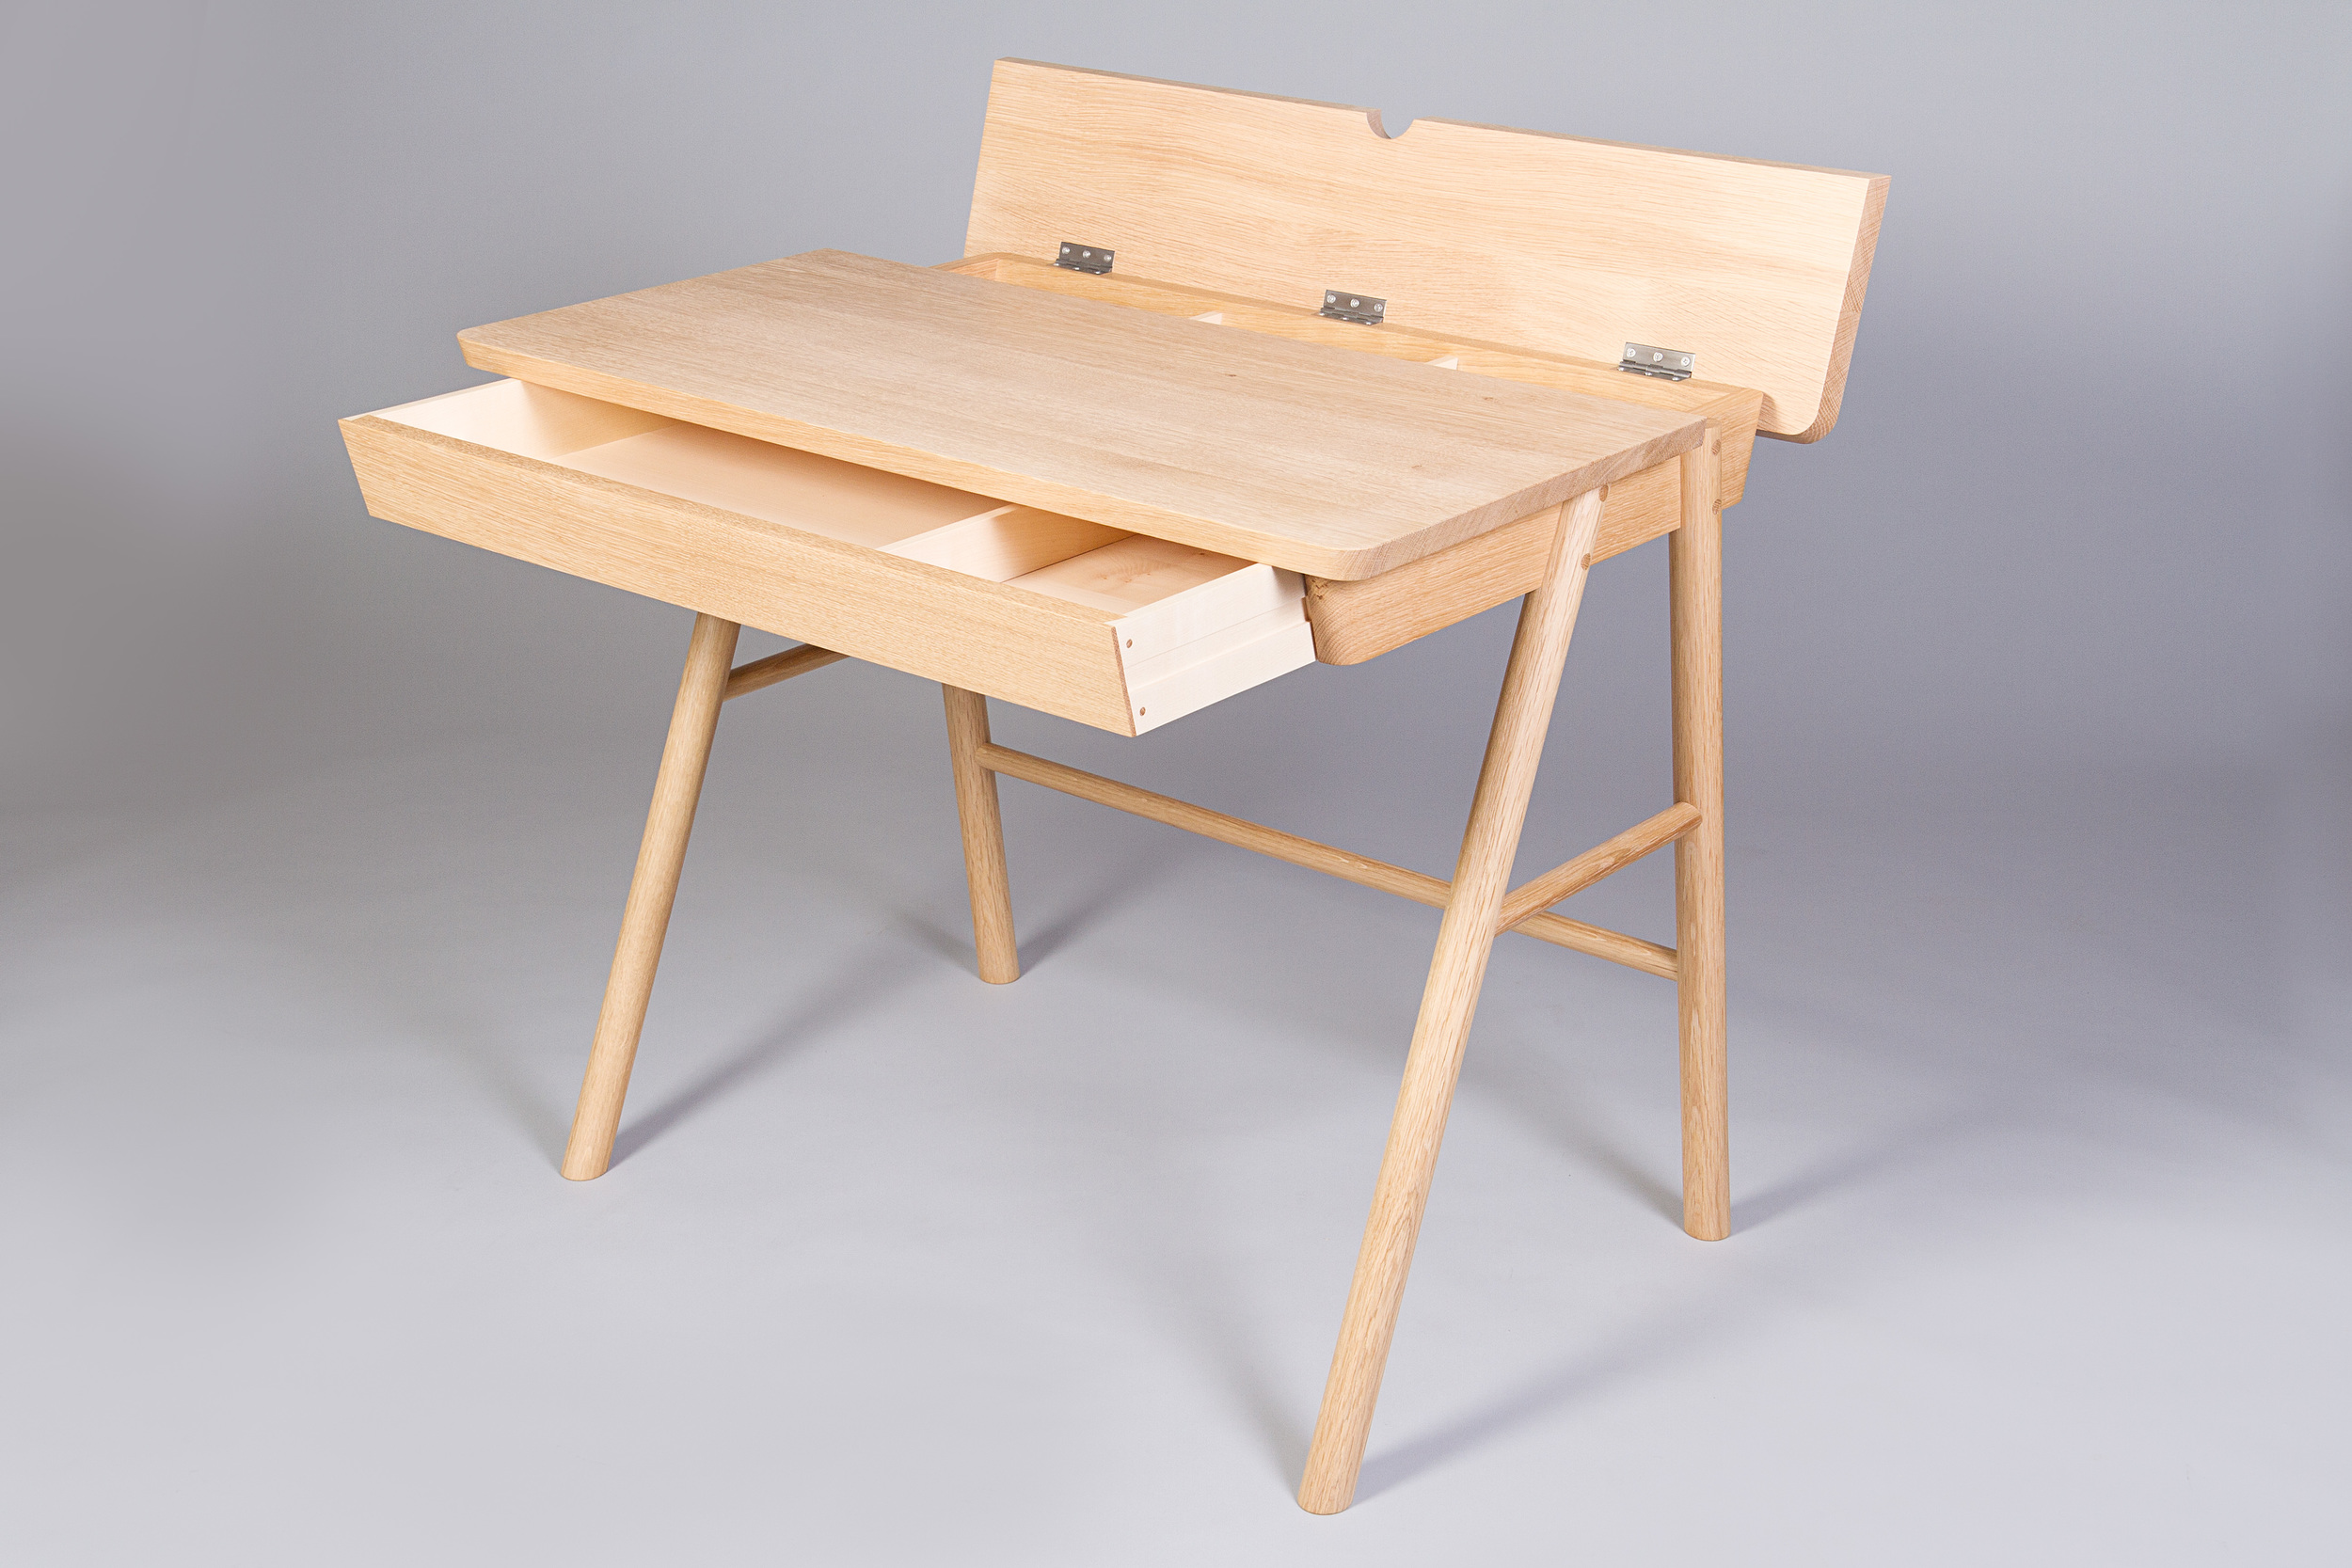 Bespoke Oak writing desk commission by furniture designer and maker Namon Gaston